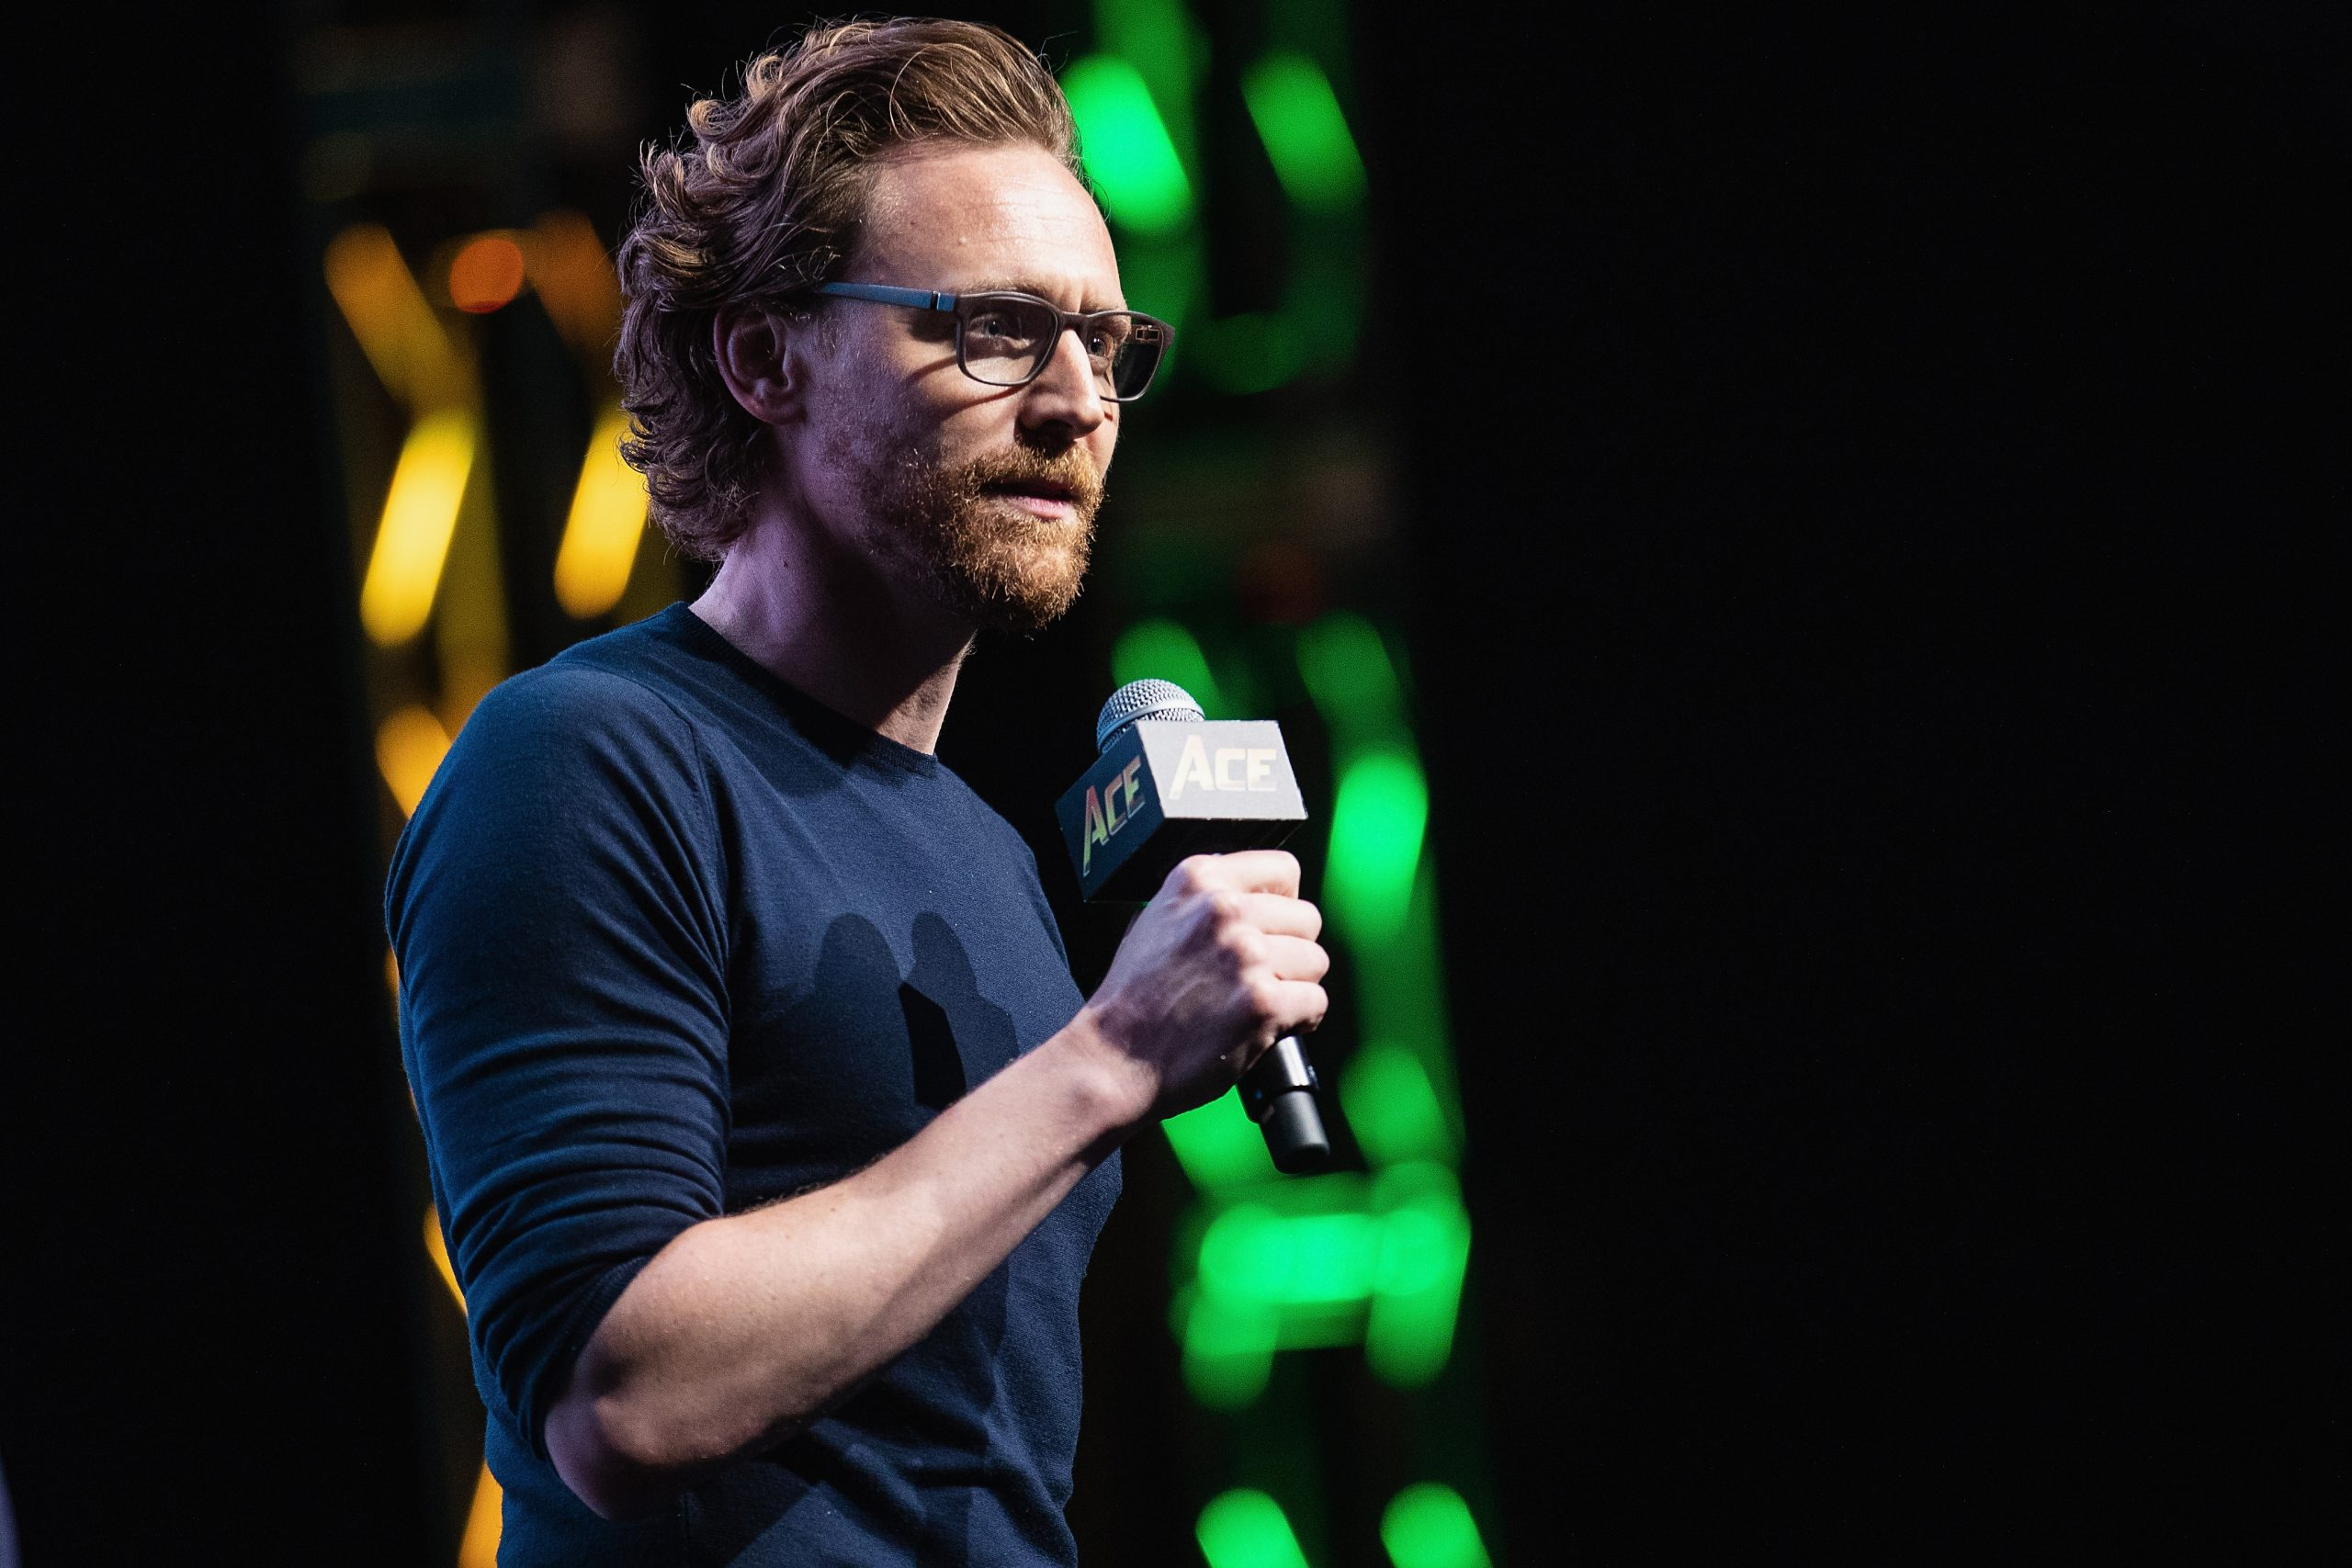 Tom Hiddleston speaks on stage about life as Loki in the Marvel Universe during ACE Comic Co